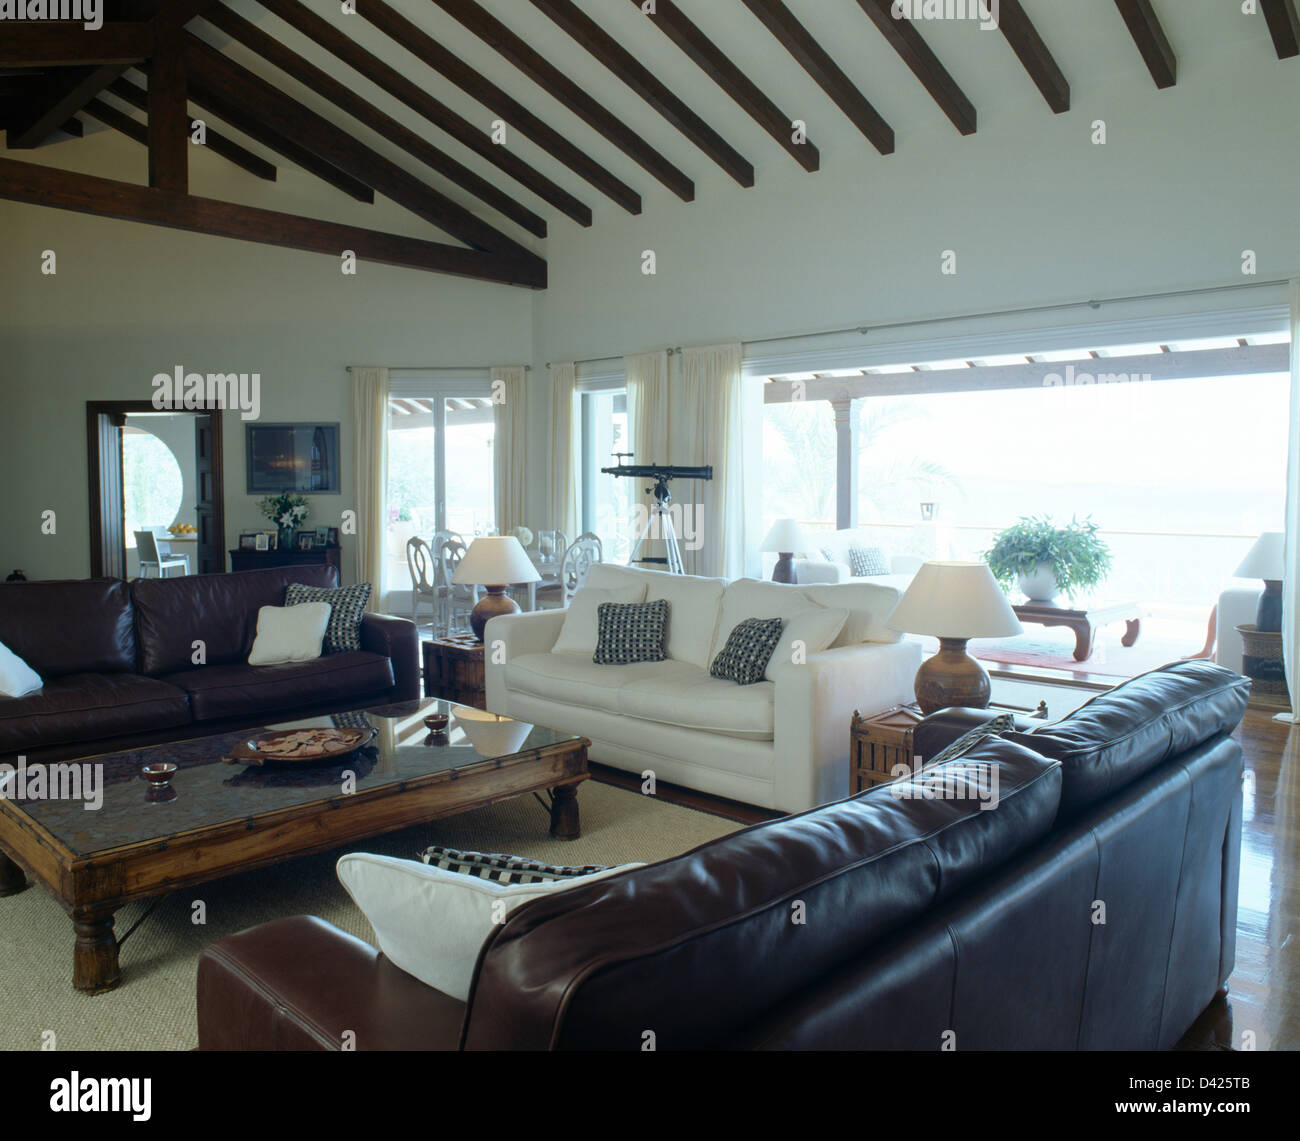 Coastal Living Rooms. Brown leather sofas and white sofa in modern coastal living room with  Indonesian wood coffee table beamed apex ceiling